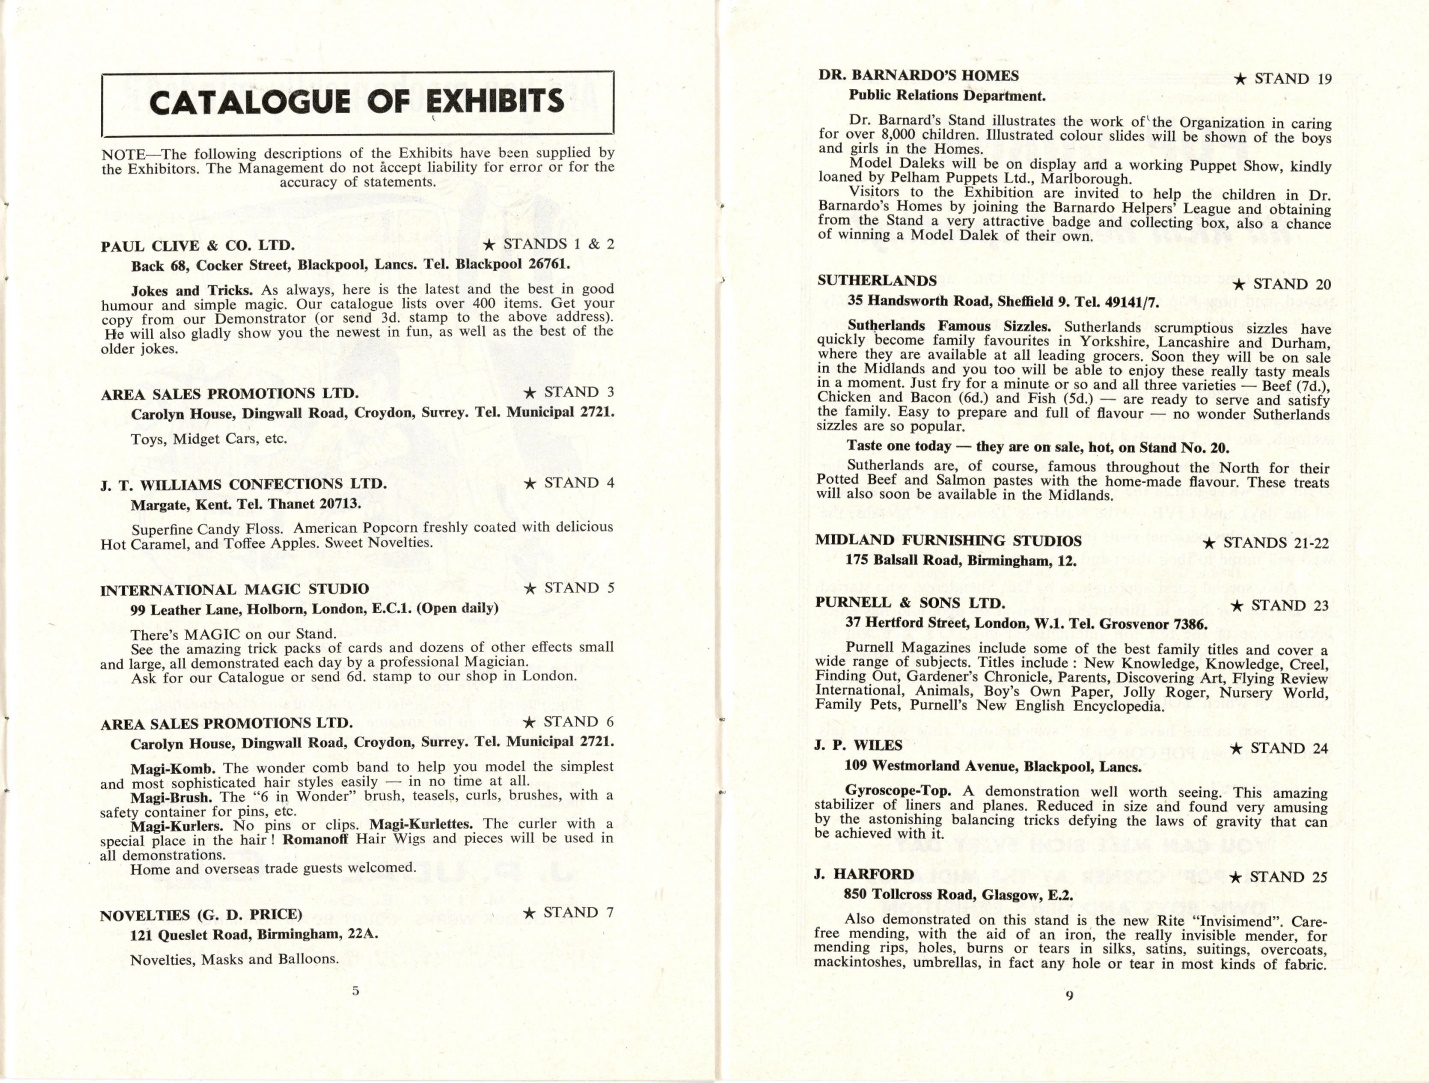 Exhibits list form the Birmingham Boys and Girls Exhibition, where Dr, Barnardo's Homes were displaying toy Daleks